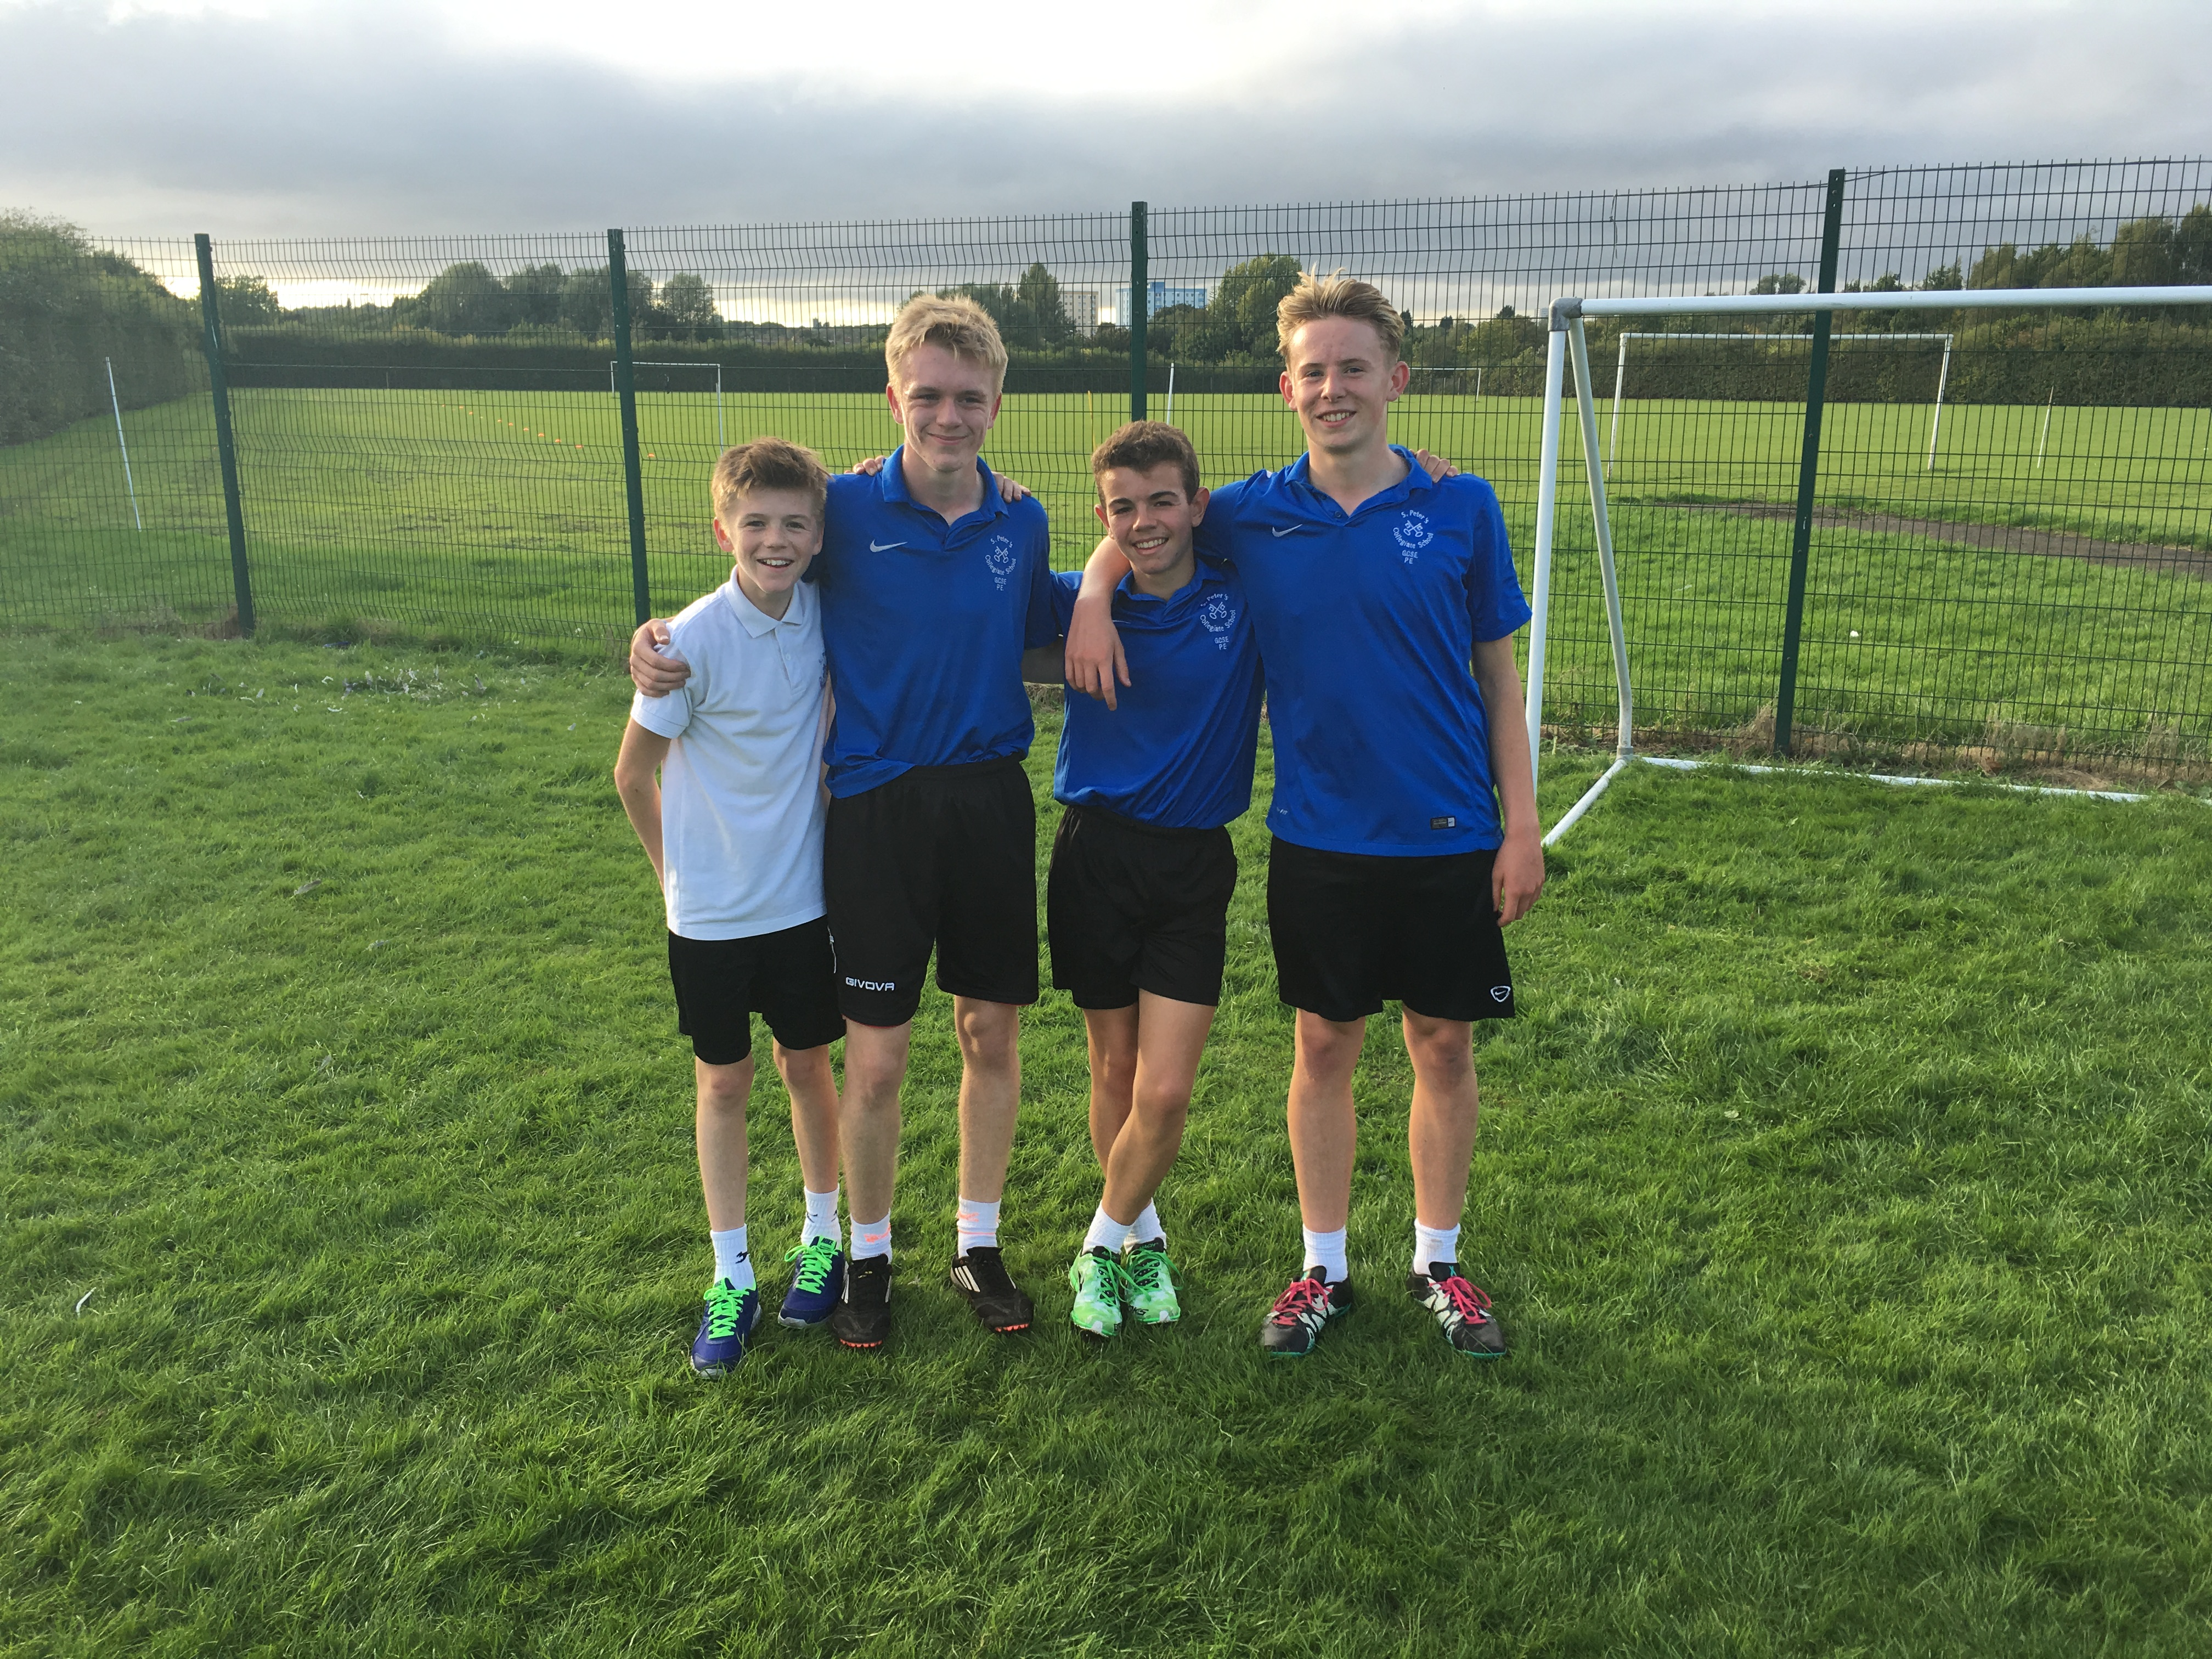 Year 10 and 11 boys cross-country team